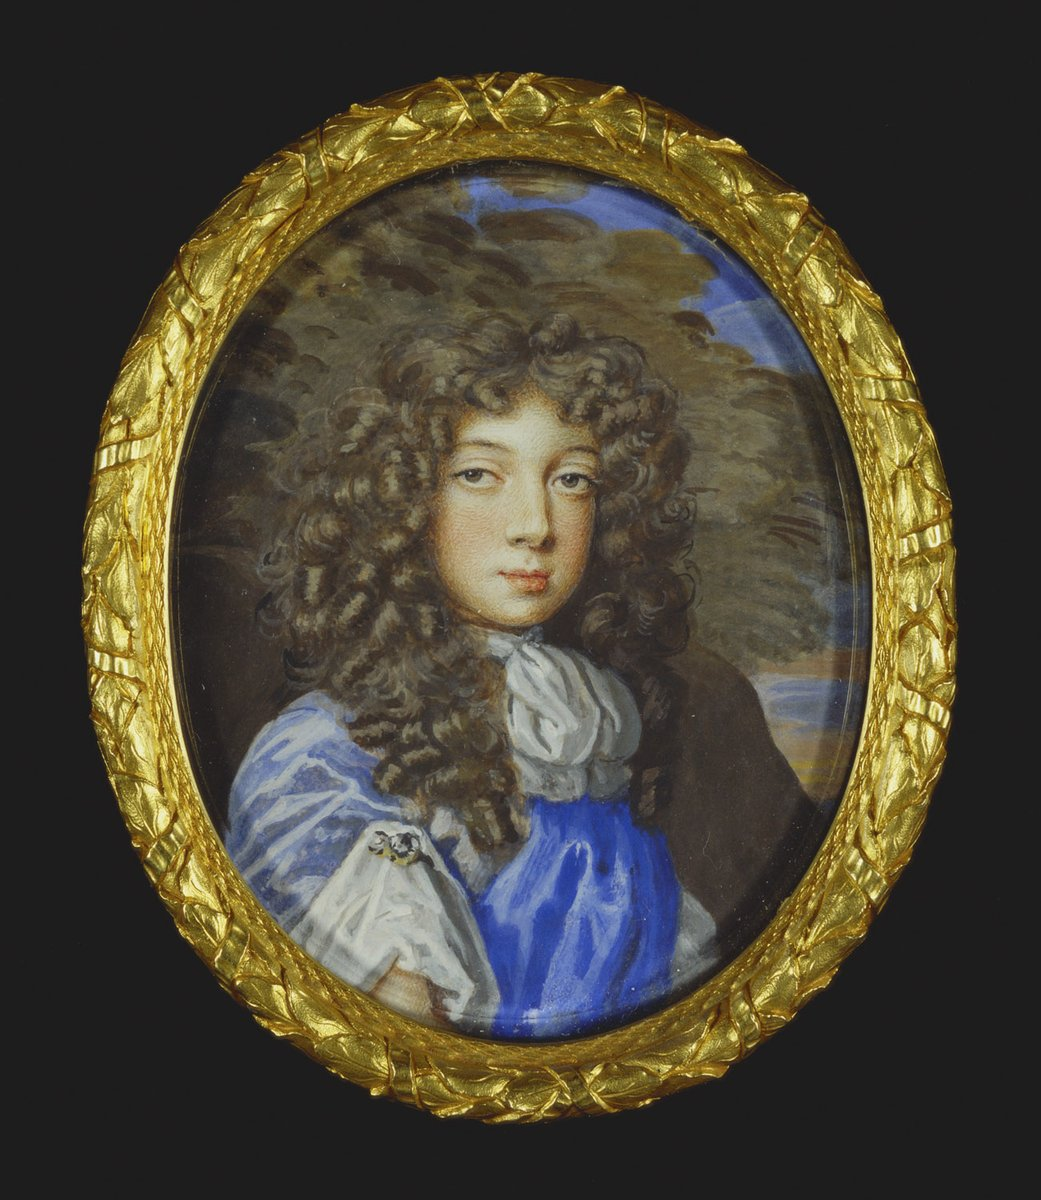 Day 6 of The Seventeenth Century Lady's #17thCentury Advent Calendar  Behind today's door is a miniature portrait of an unknown youth 1680-90 by Nicholas Dixon (1660-1708). Who was he? What was his story? The Royal Collection Trust. #KeepItStuart<br>http://pic.twitter.com/GsRwbPhelU